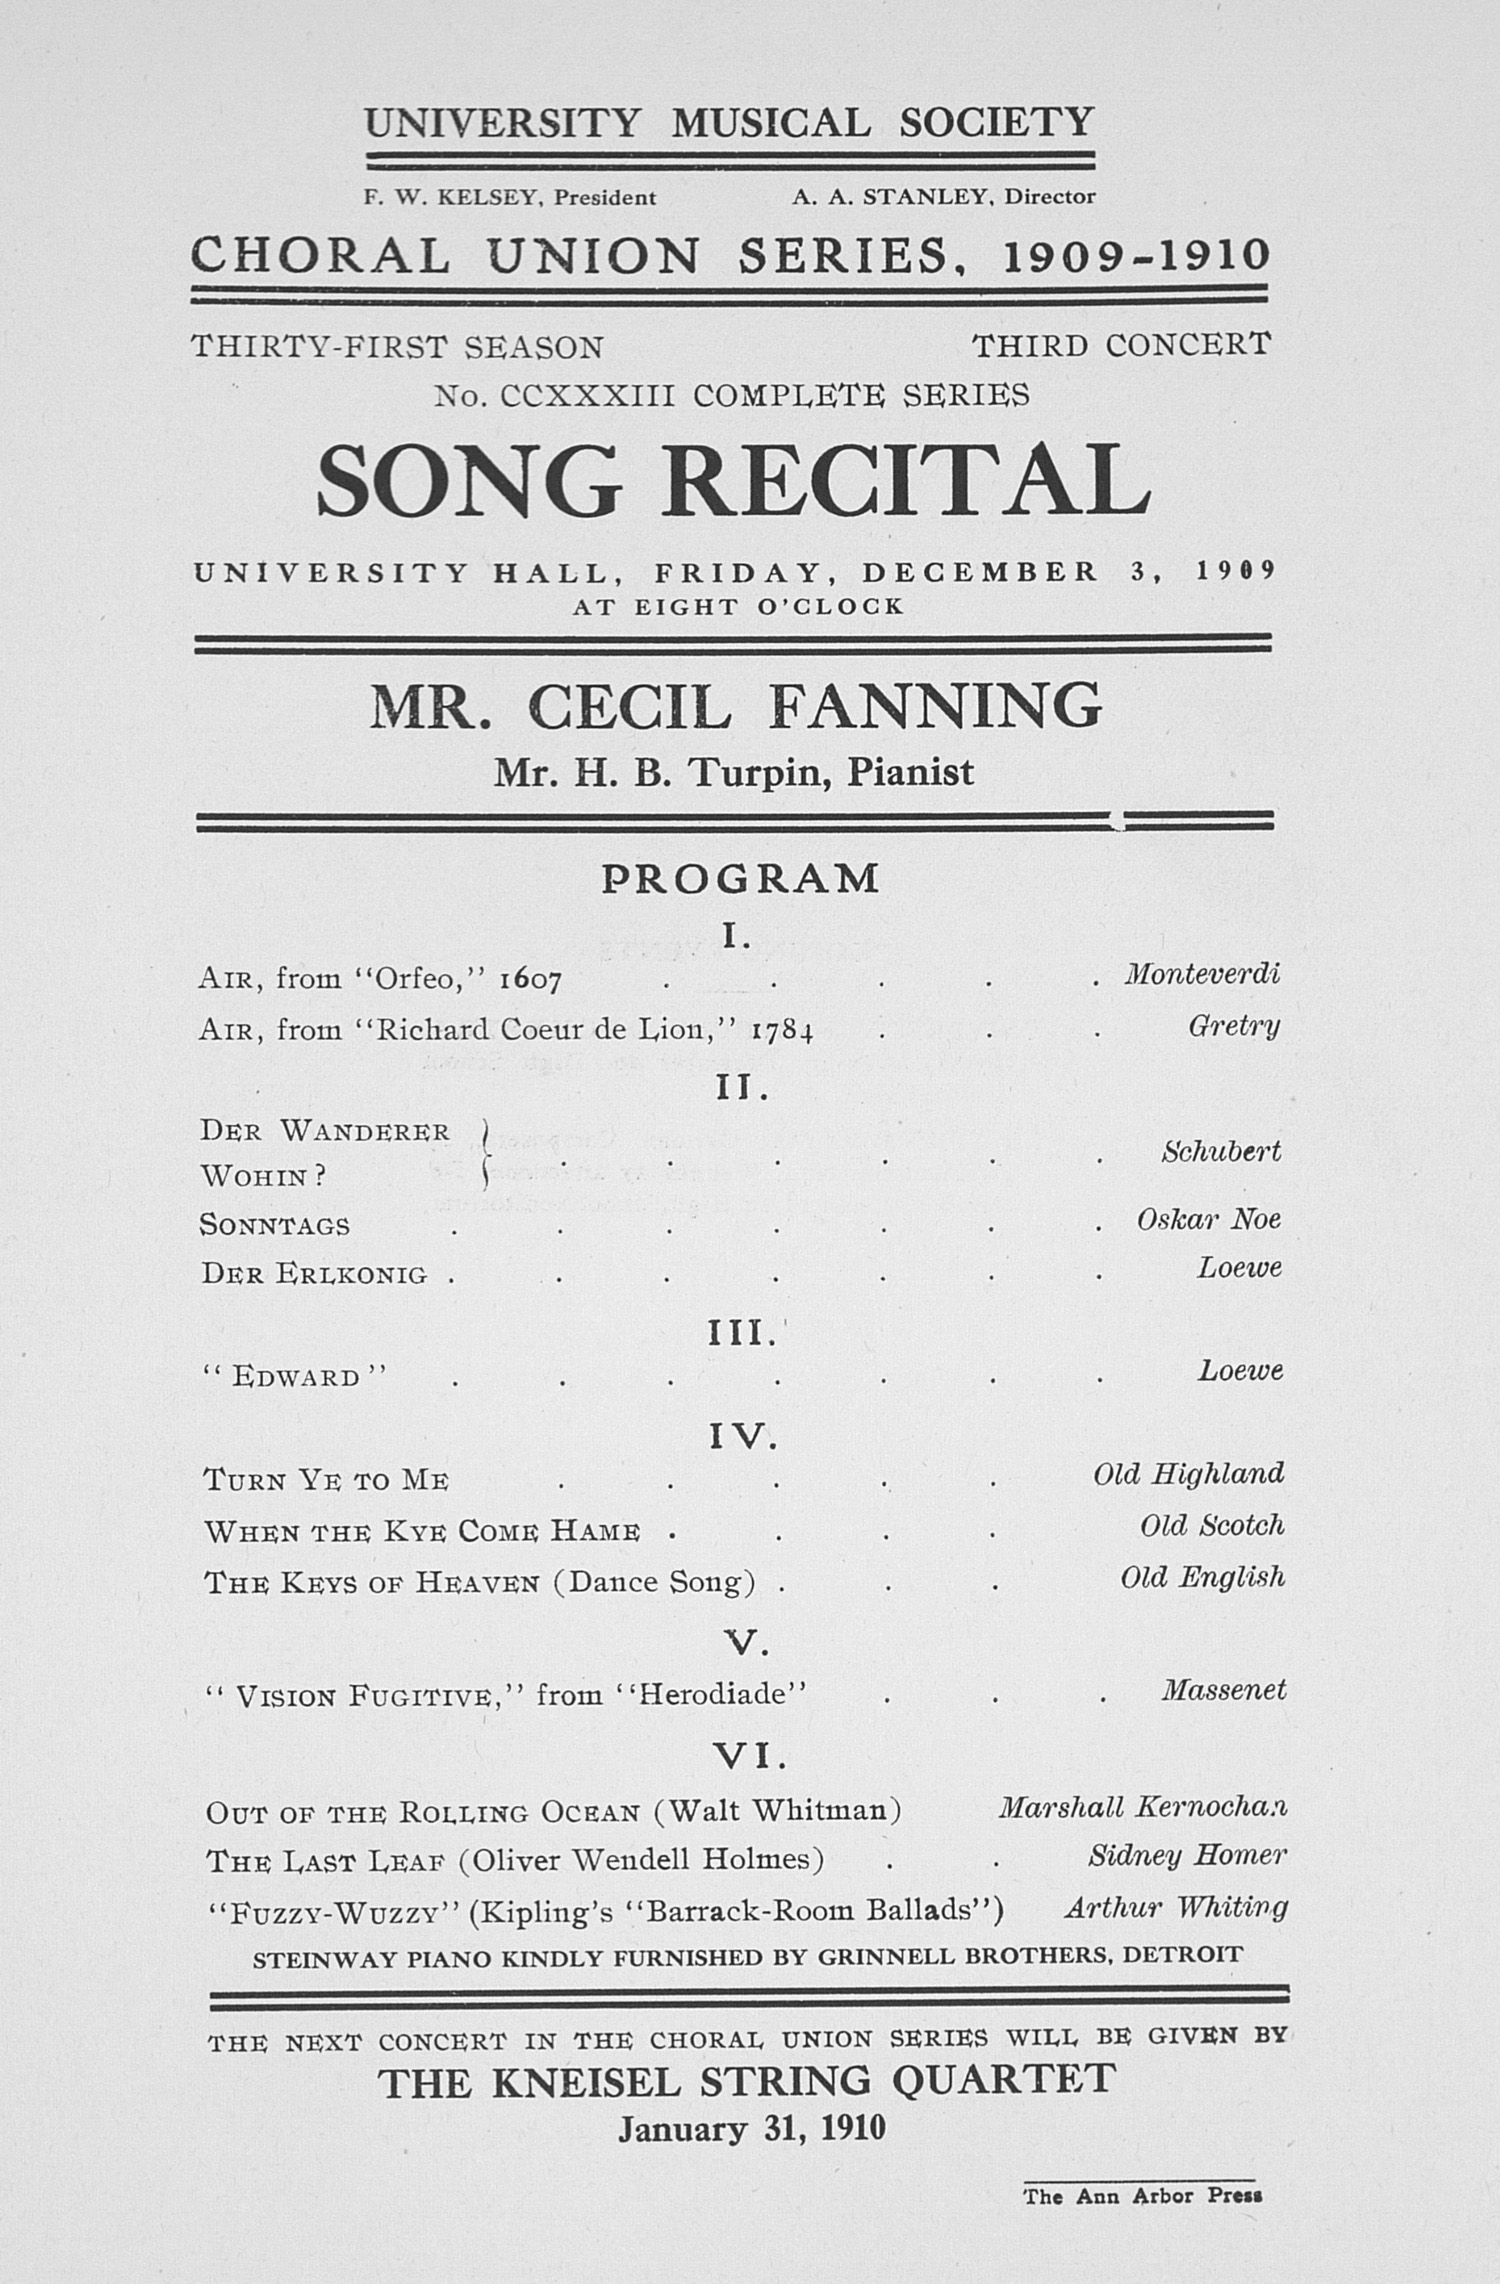 UMS Concert Program, December 3, 1909: Song Recital -- Mr. Cecil Fanning image